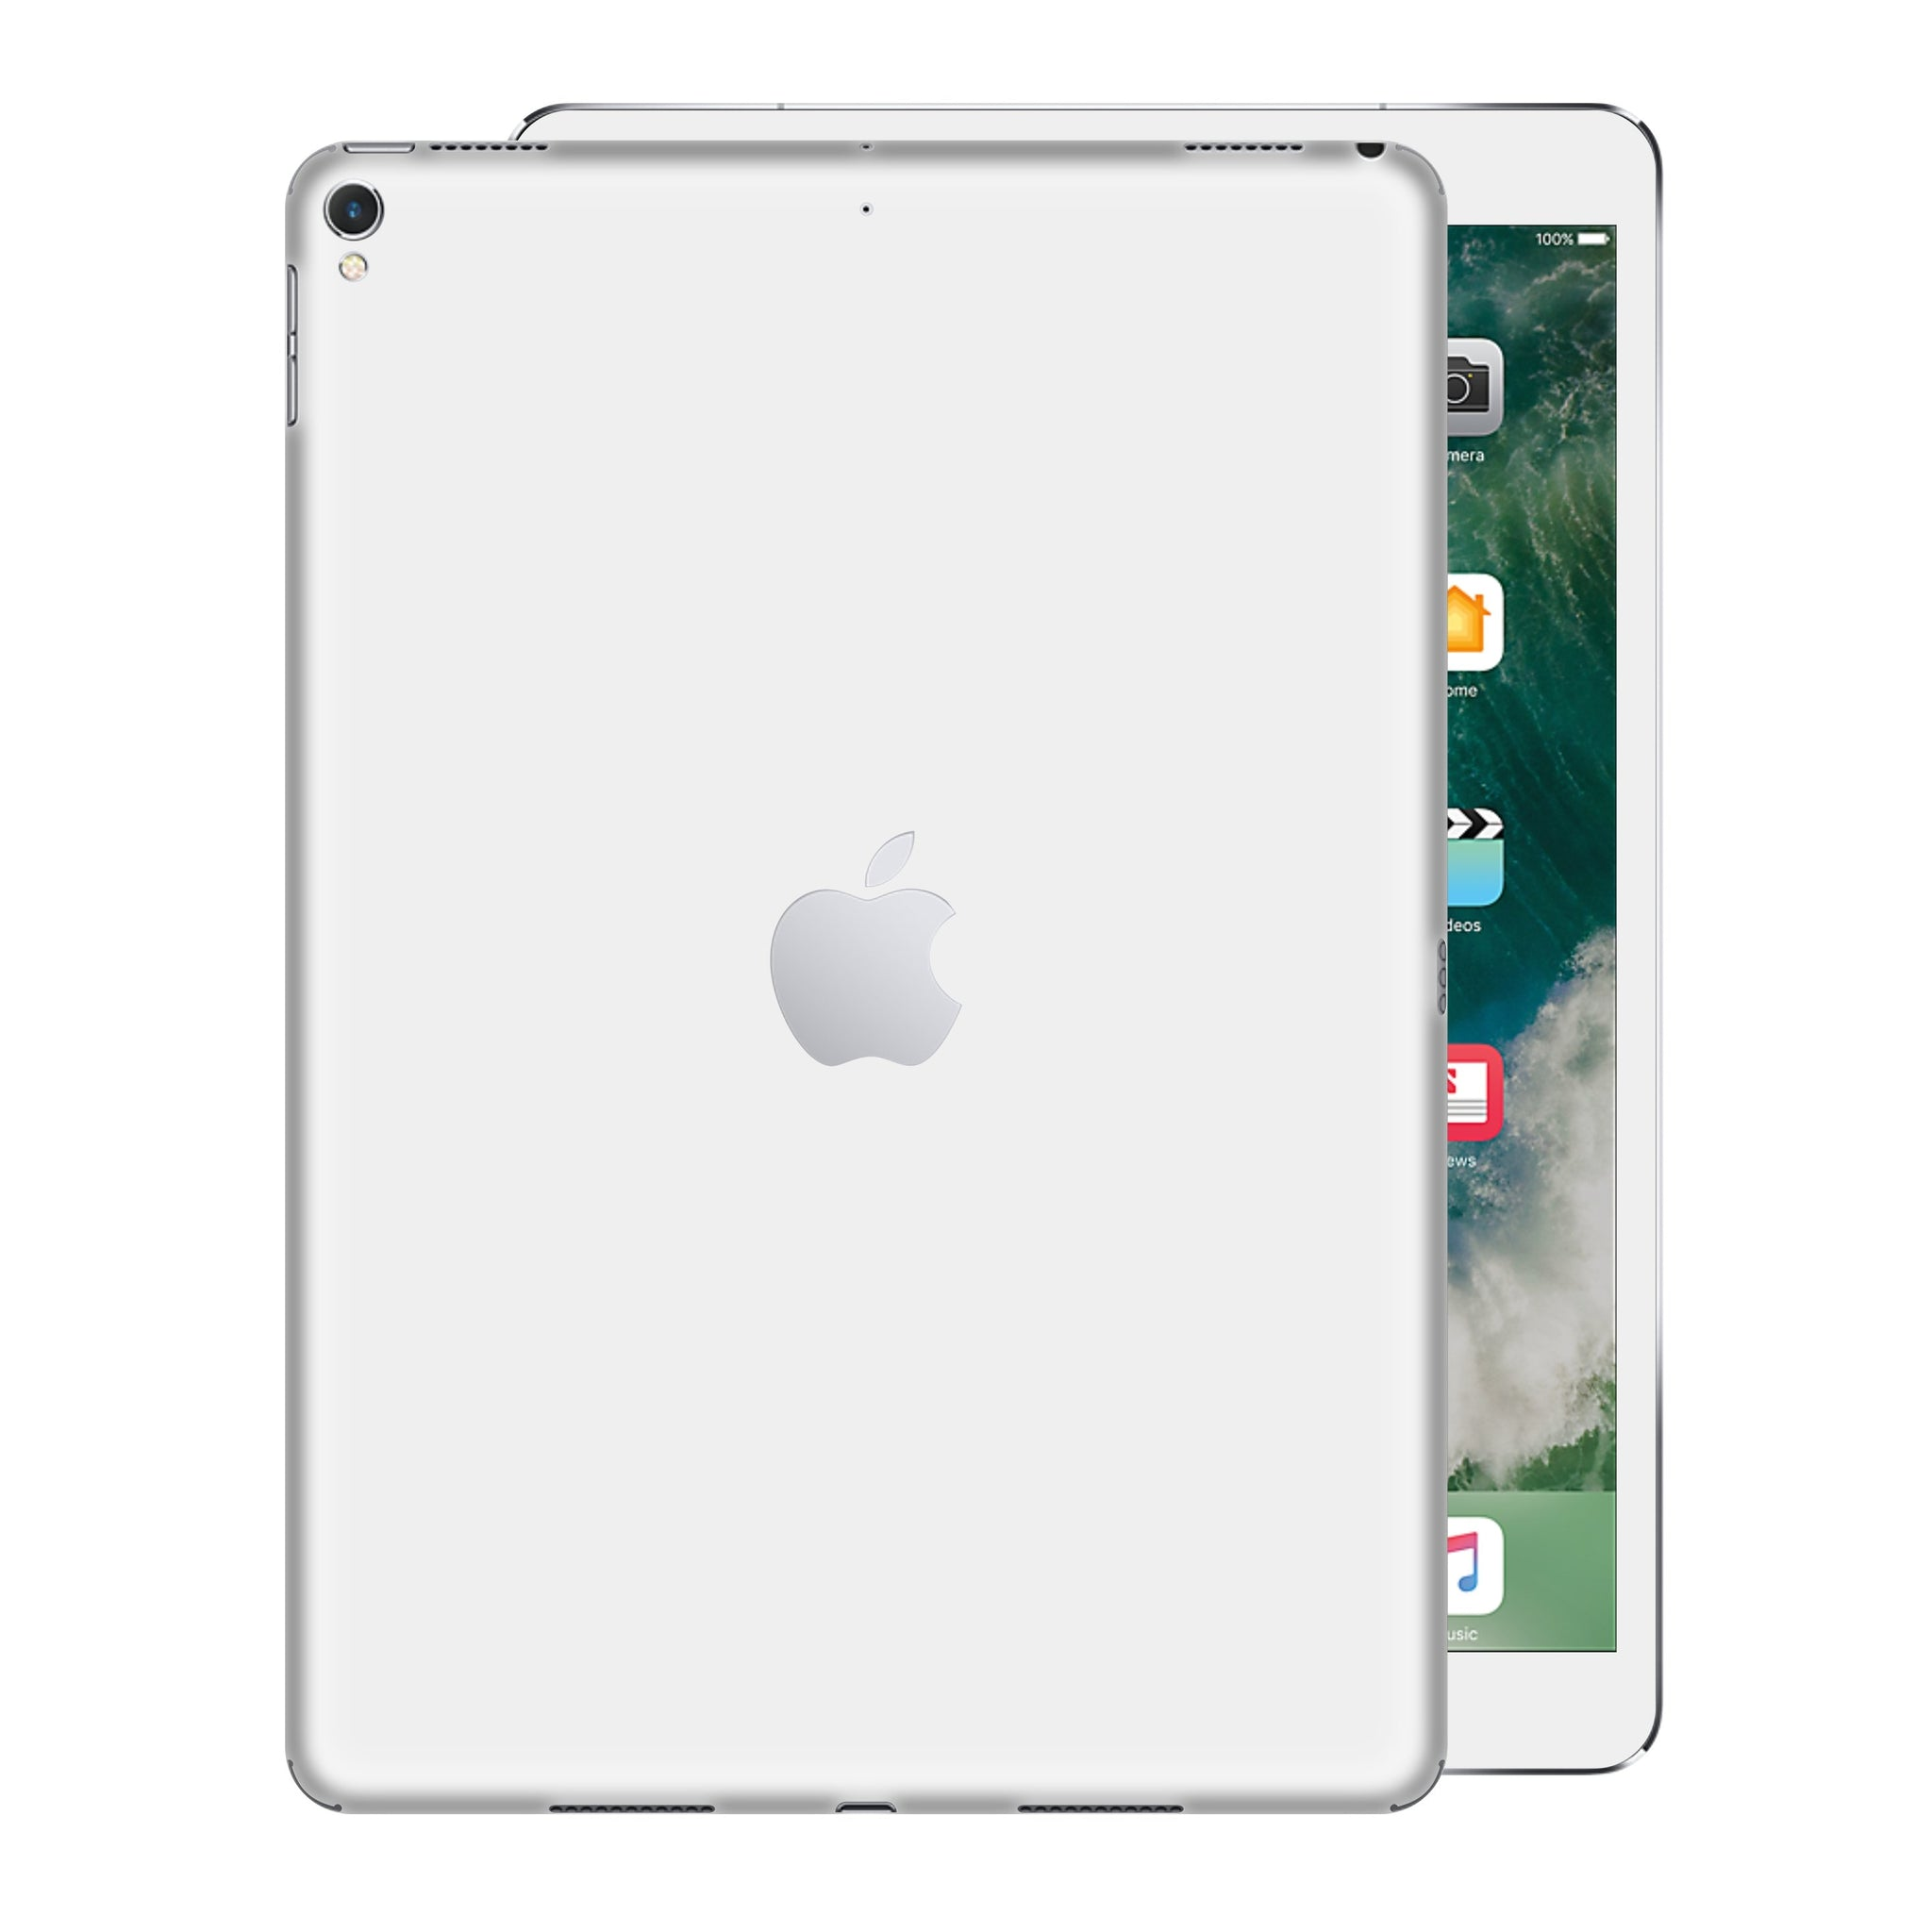 iPad PRO 12.9 inch 2017 Glossy White Skin Wrap Sticker Decal Cover Protector by EasySkinz